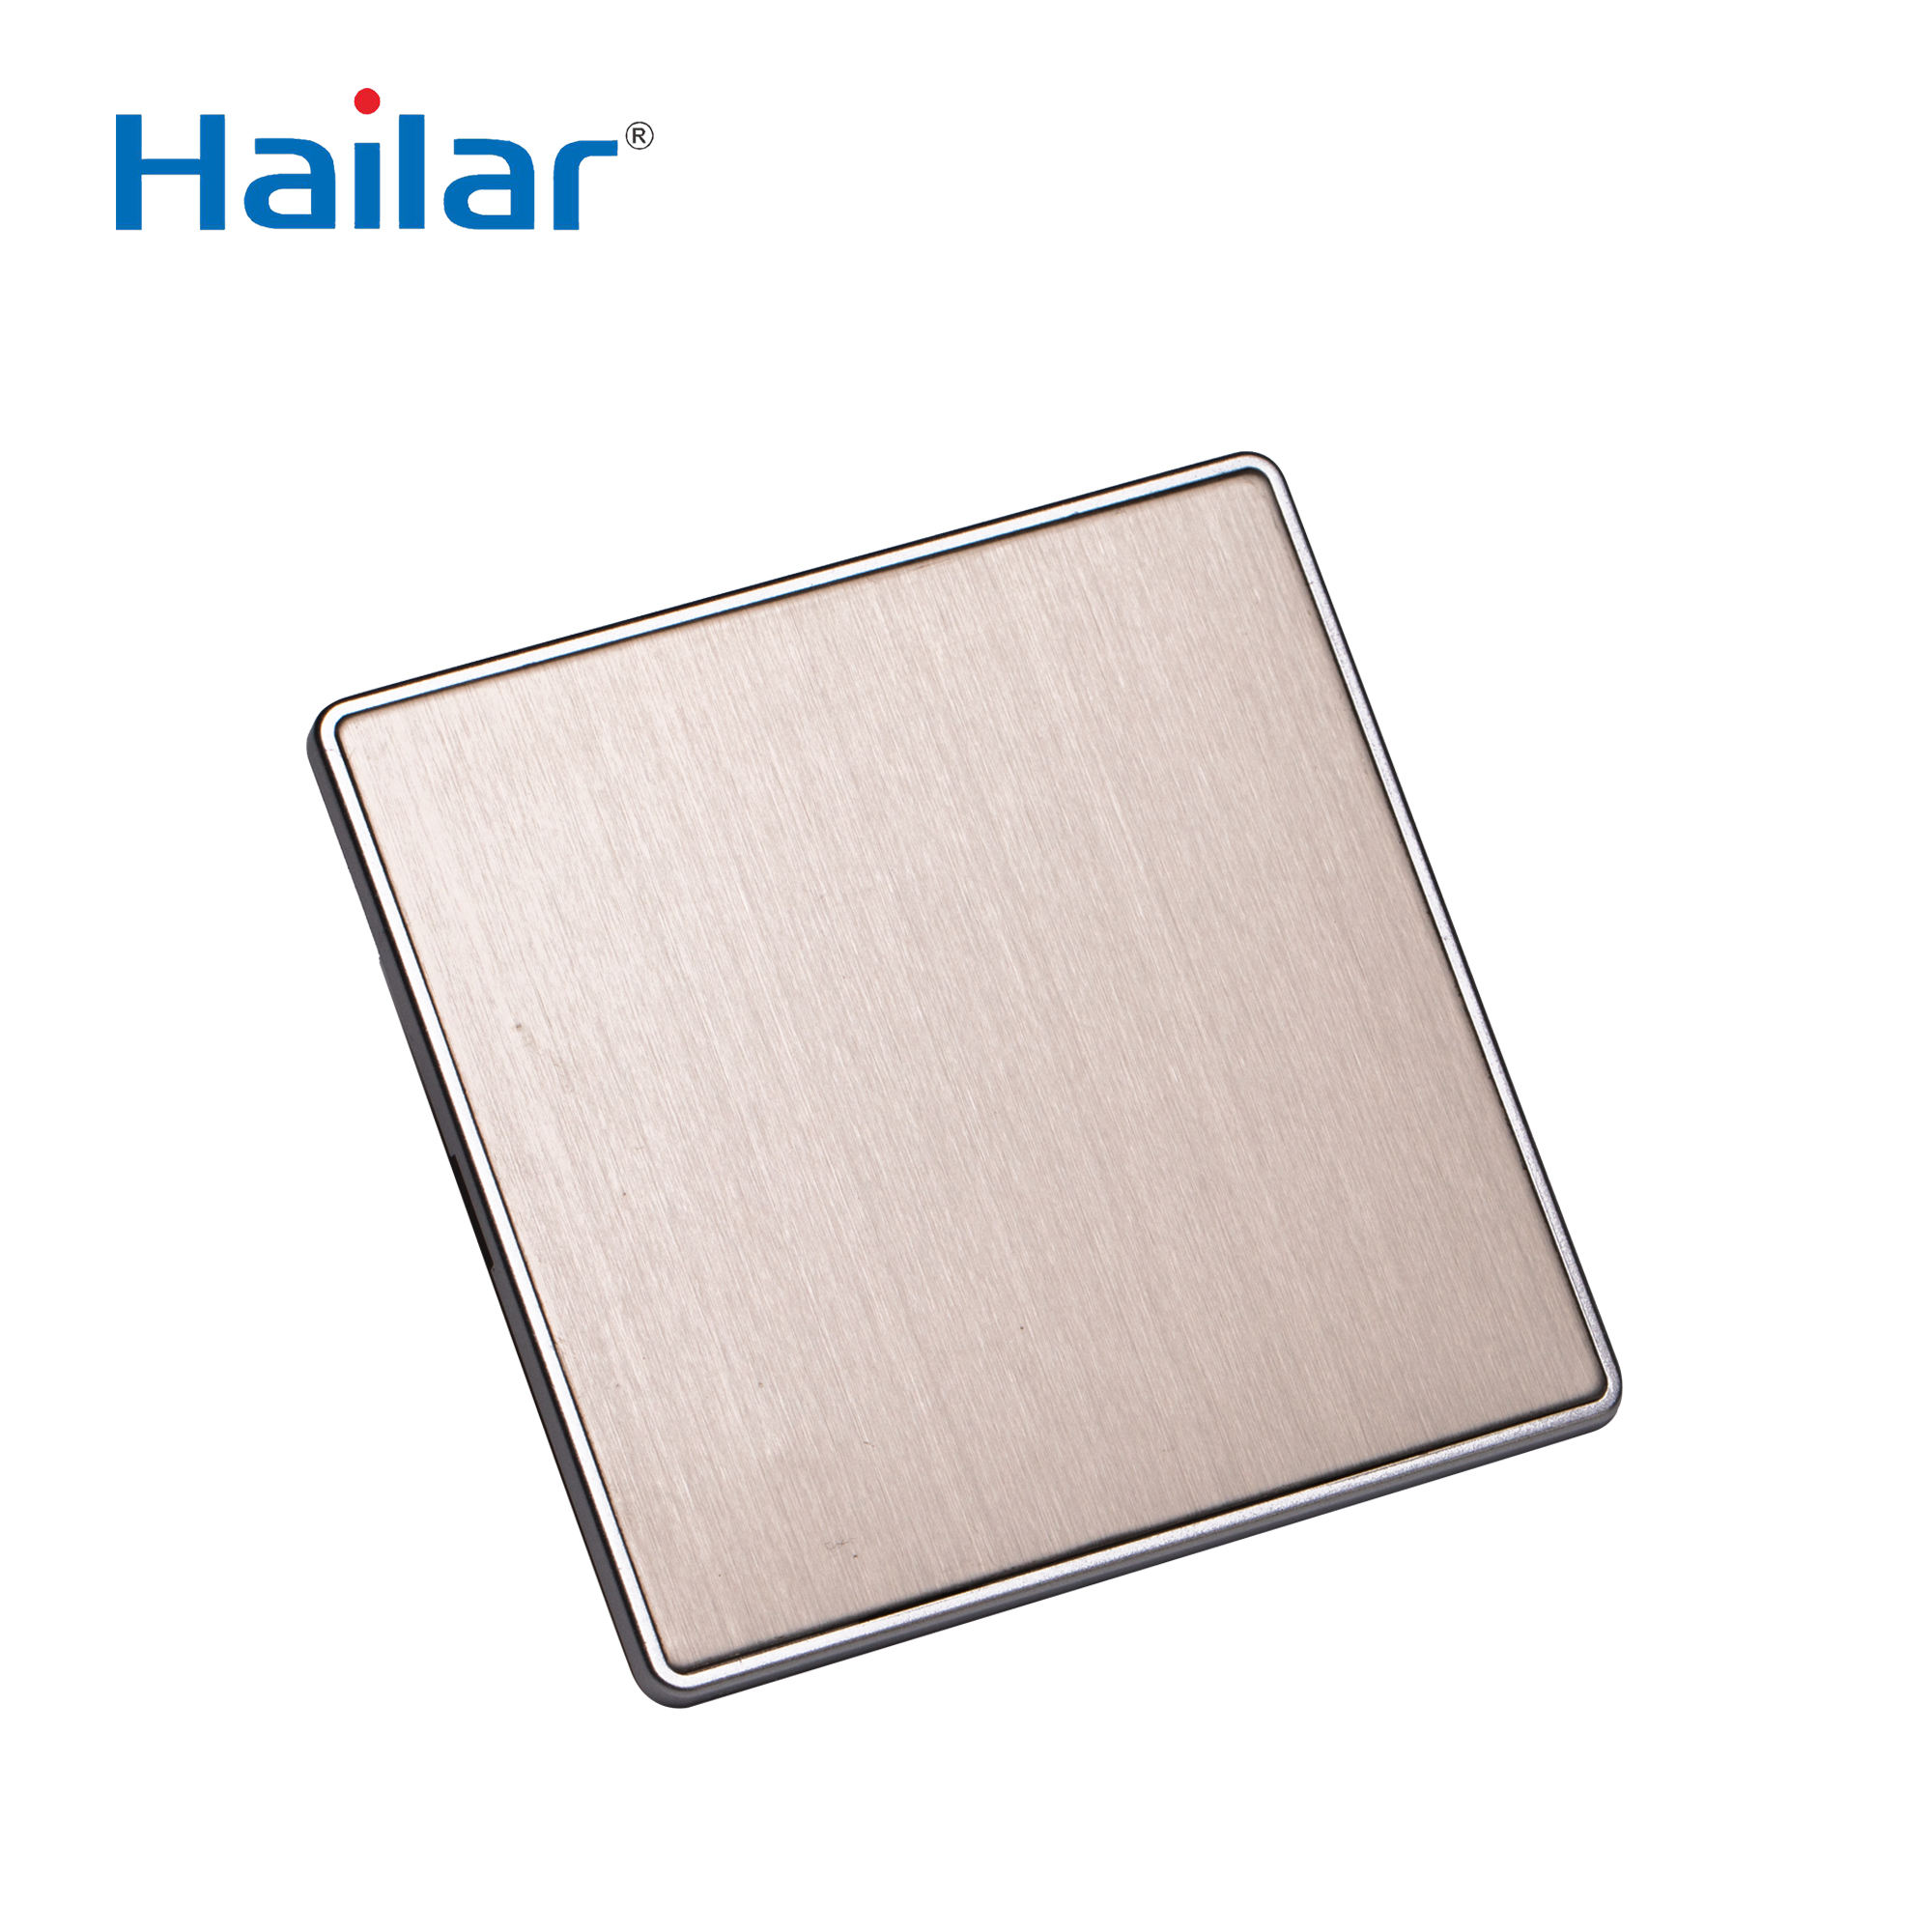 Hailar screwless brushed chrome blank wall switch plate 86*86mm